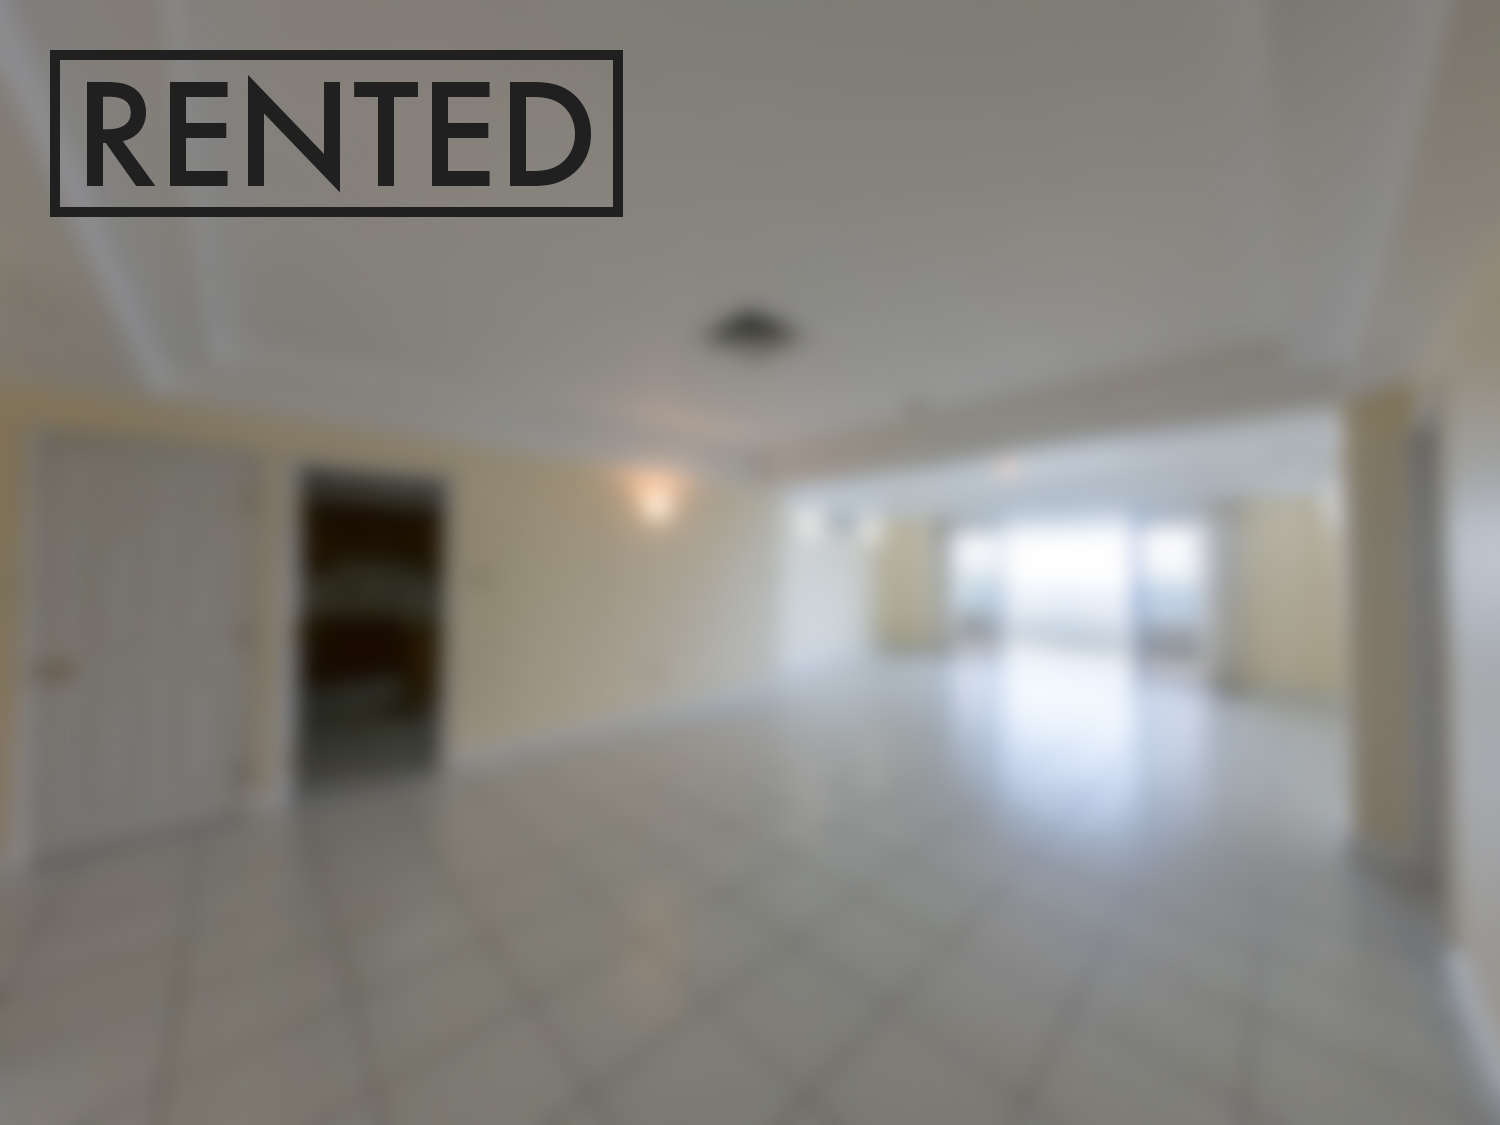 rented-for-sale.jpg